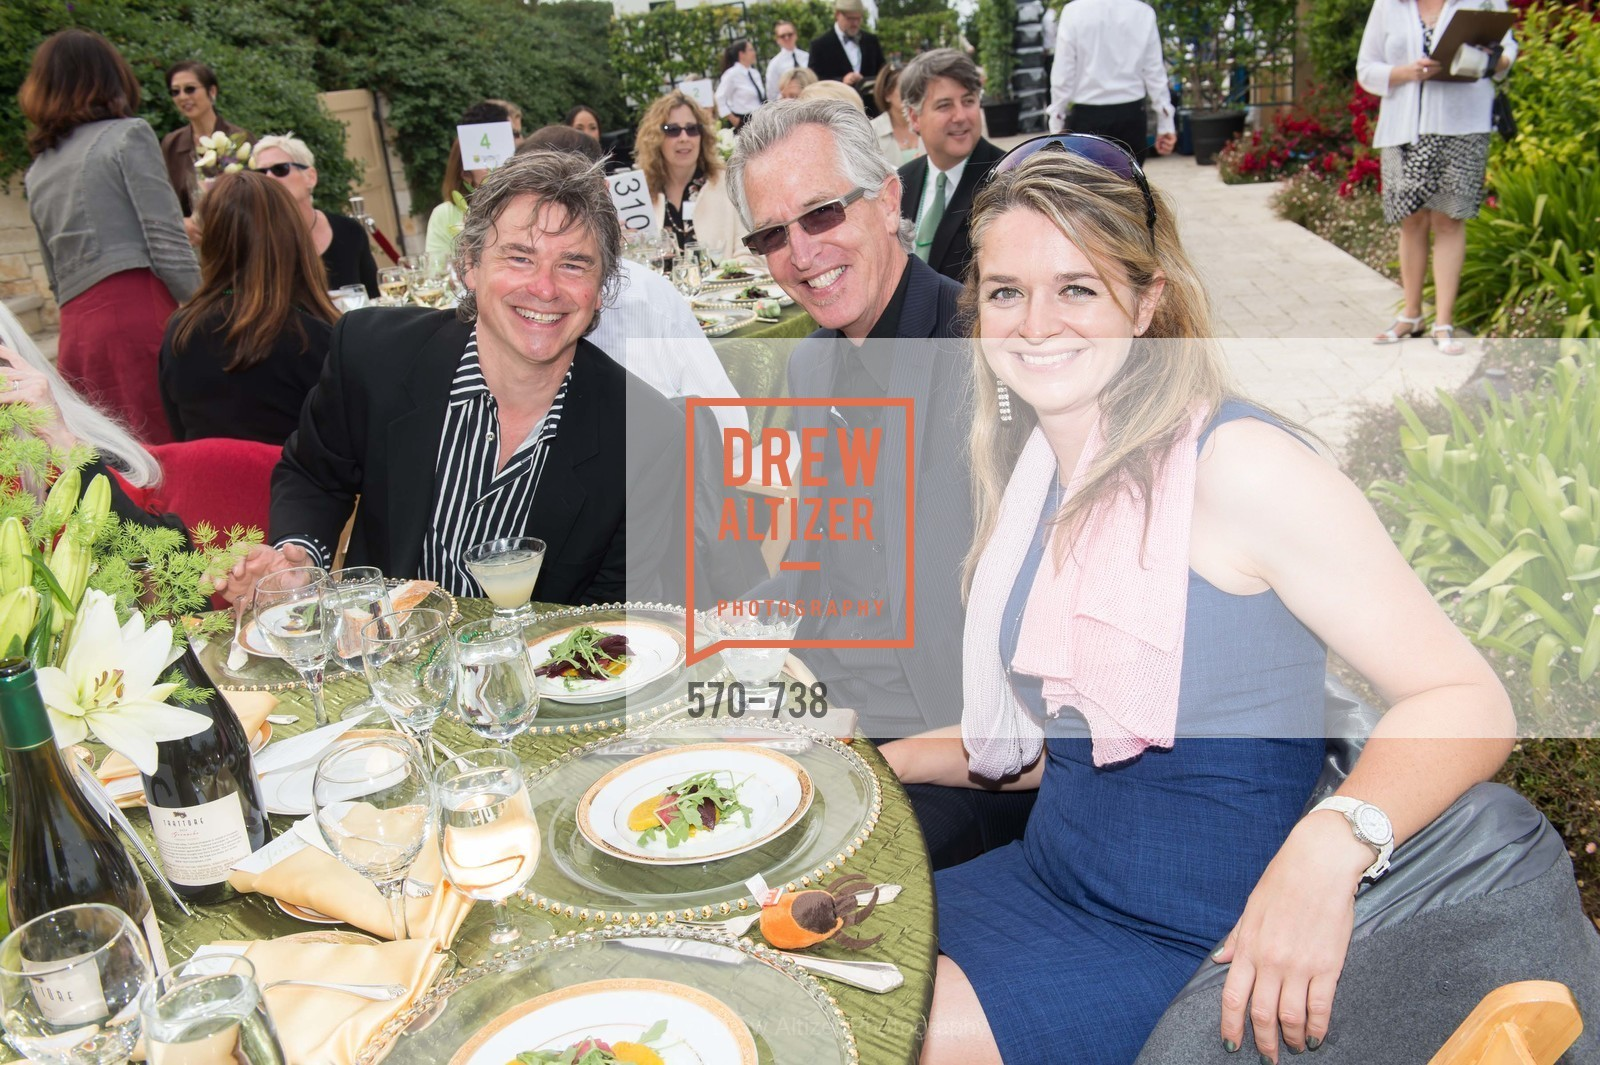 Ronny Crawford, Patrick Tinney, Sinead Devine, LymeAid 2015, US, May 17th, 2015,Drew Altizer, Drew Altizer Photography, full-service agency, private events, San Francisco photographer, photographer california